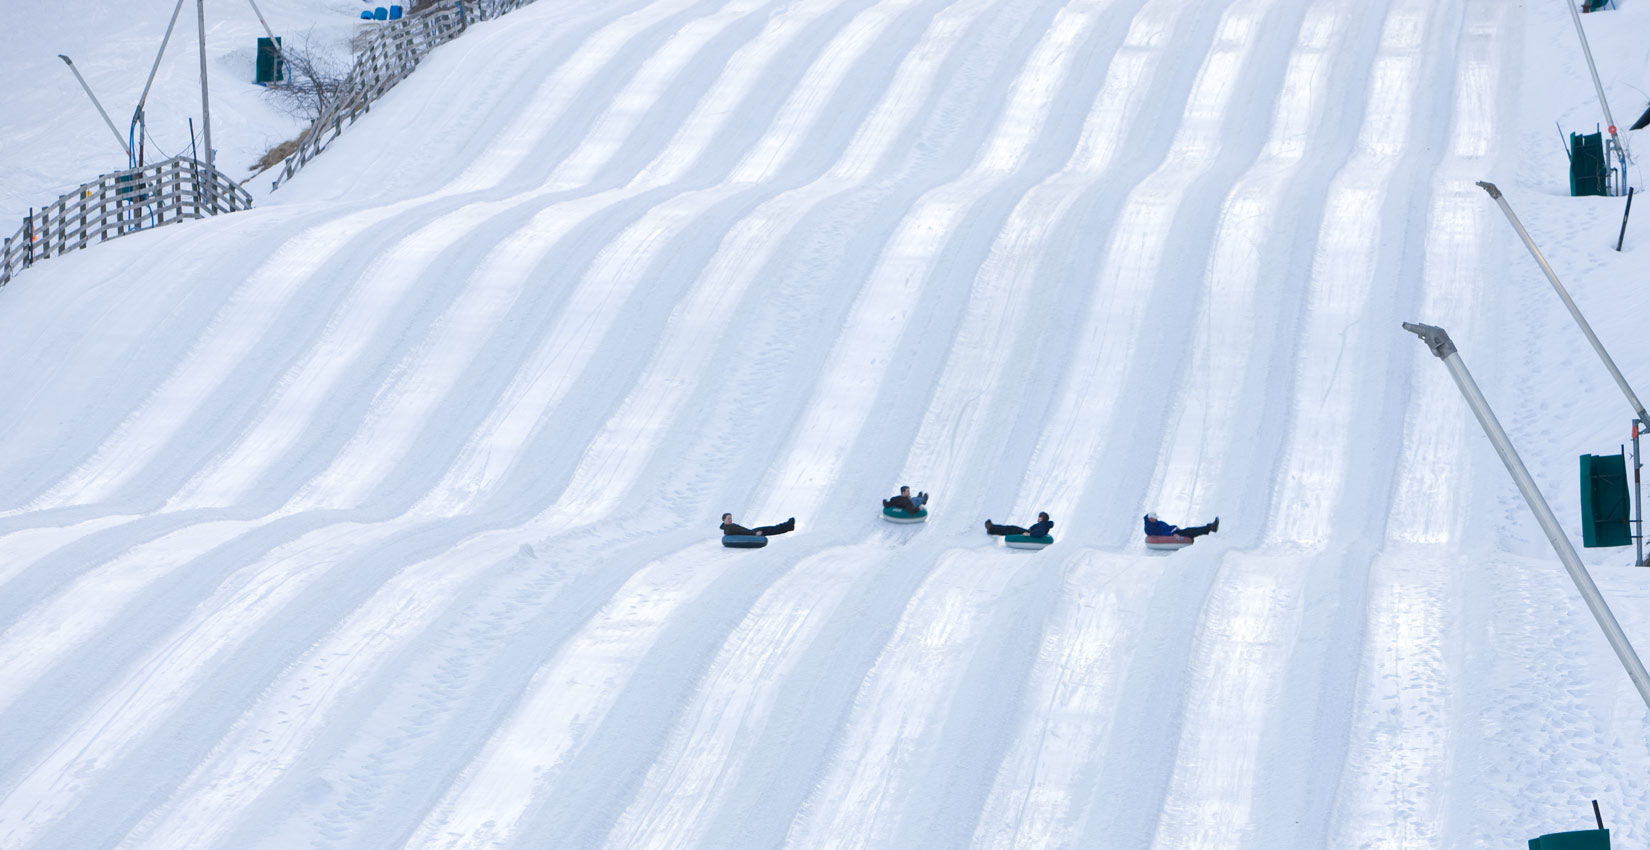 snow tubing in the blue ridge mountains